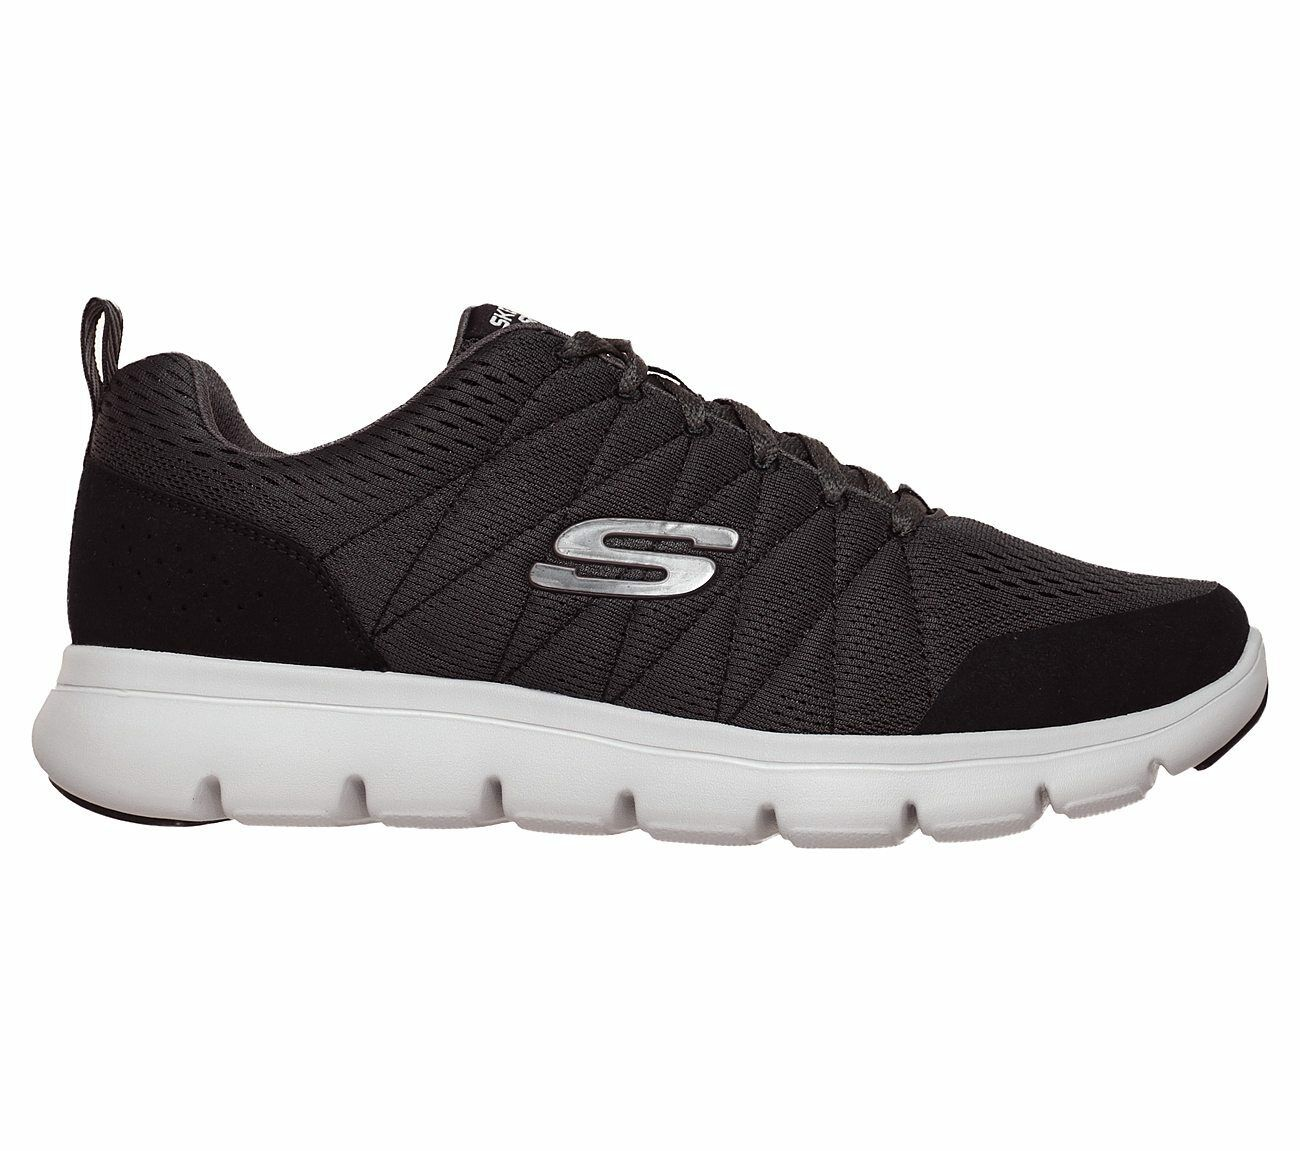 Skechers mens trainers gym exercise running  Marauder MERSHON 52836 charcoal M20